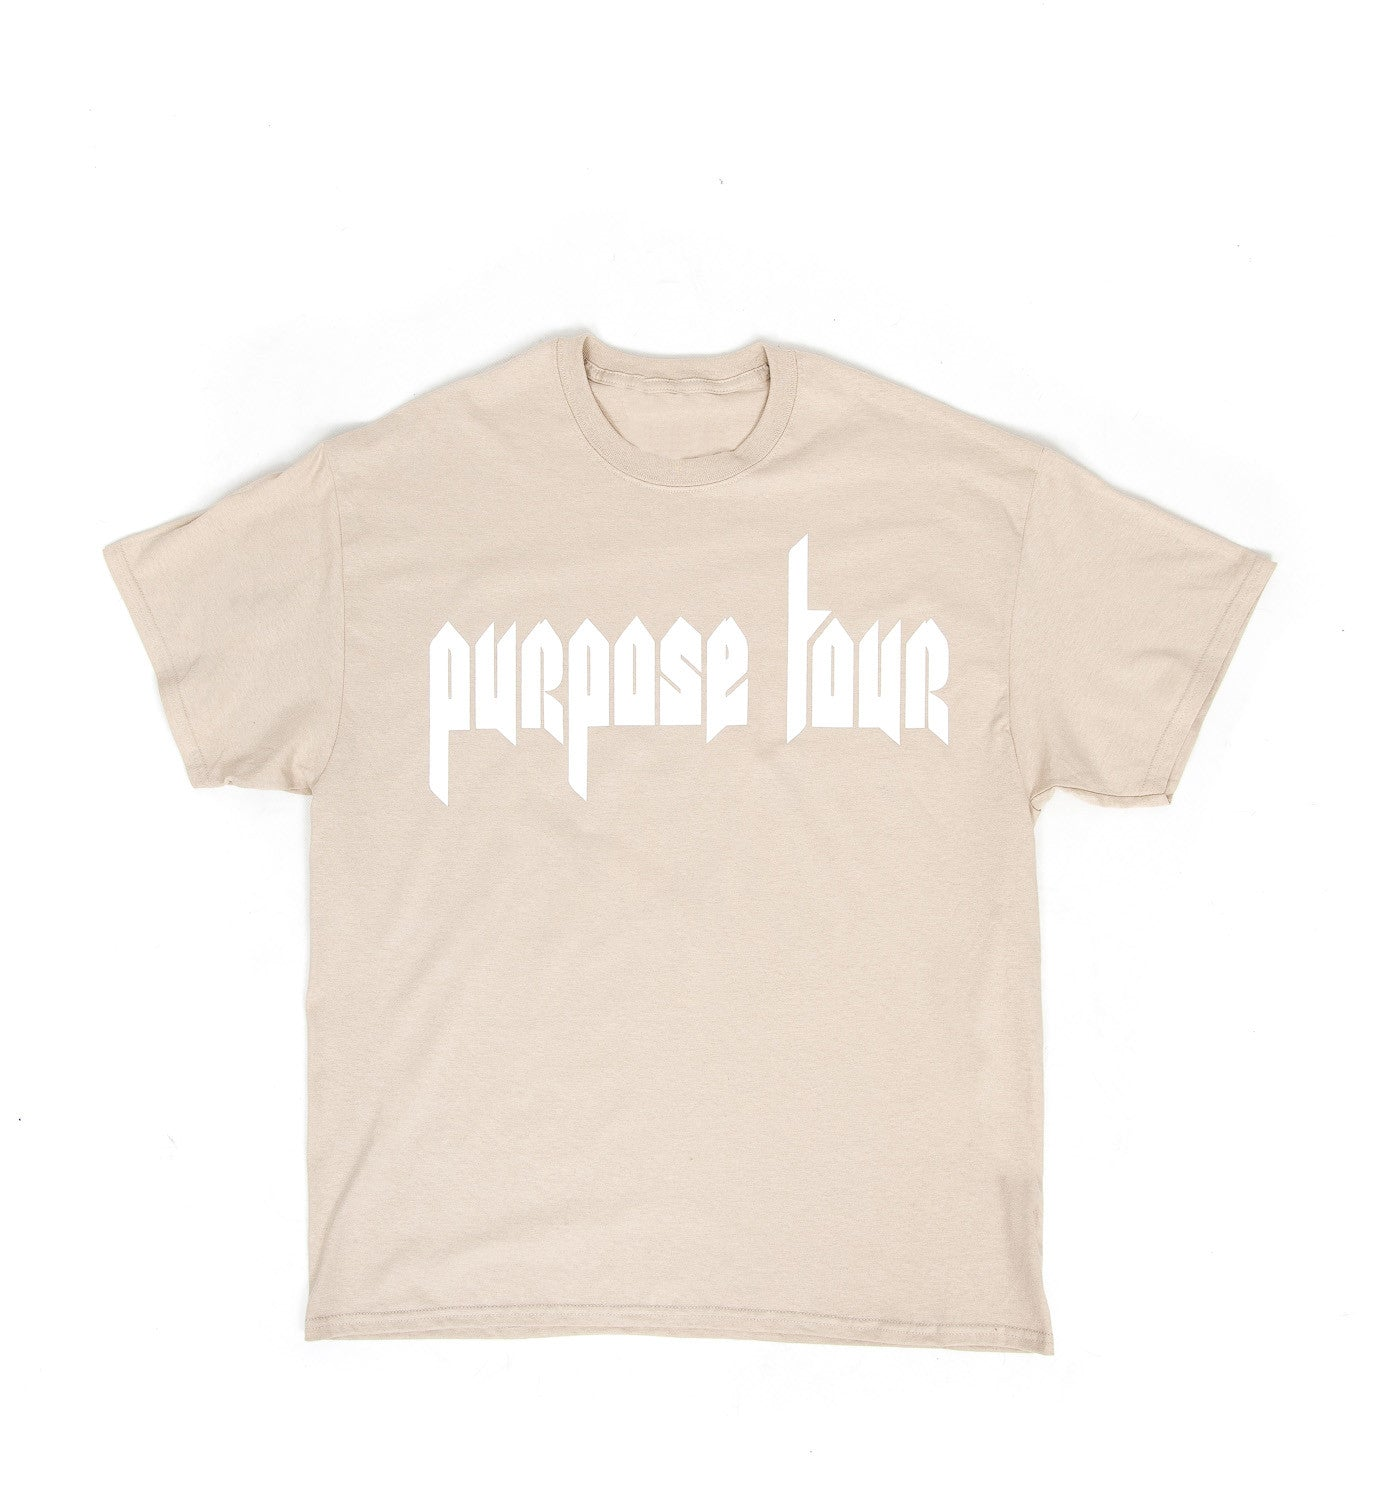 Purpose T-Shirt White/Sand